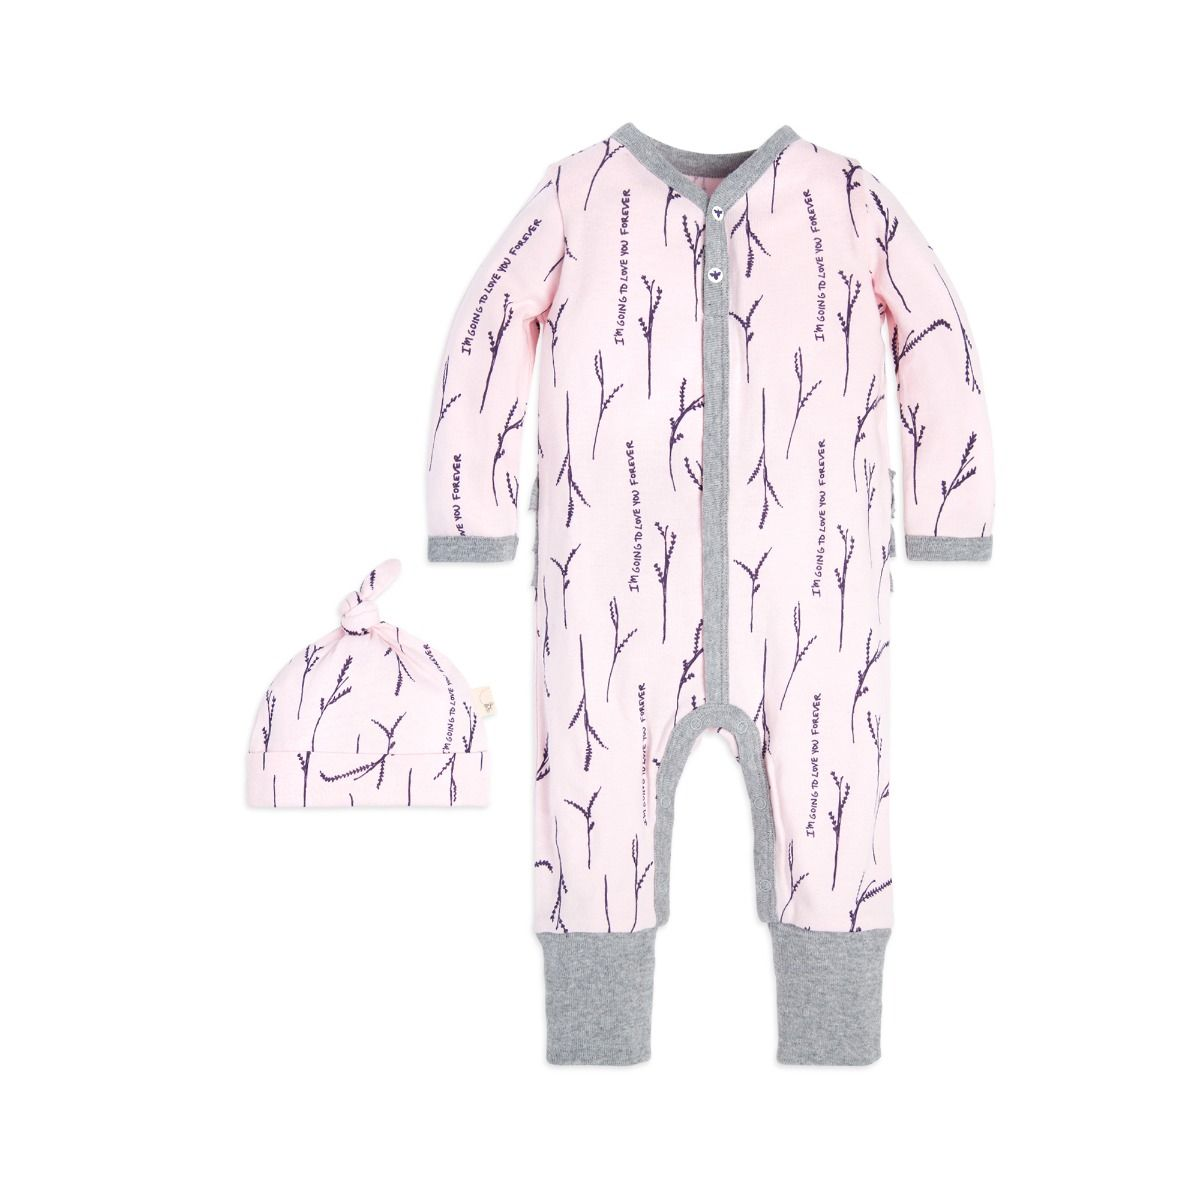 Love You More Ruffle Organic Baby One Piece Jumpsuit & Hat Set